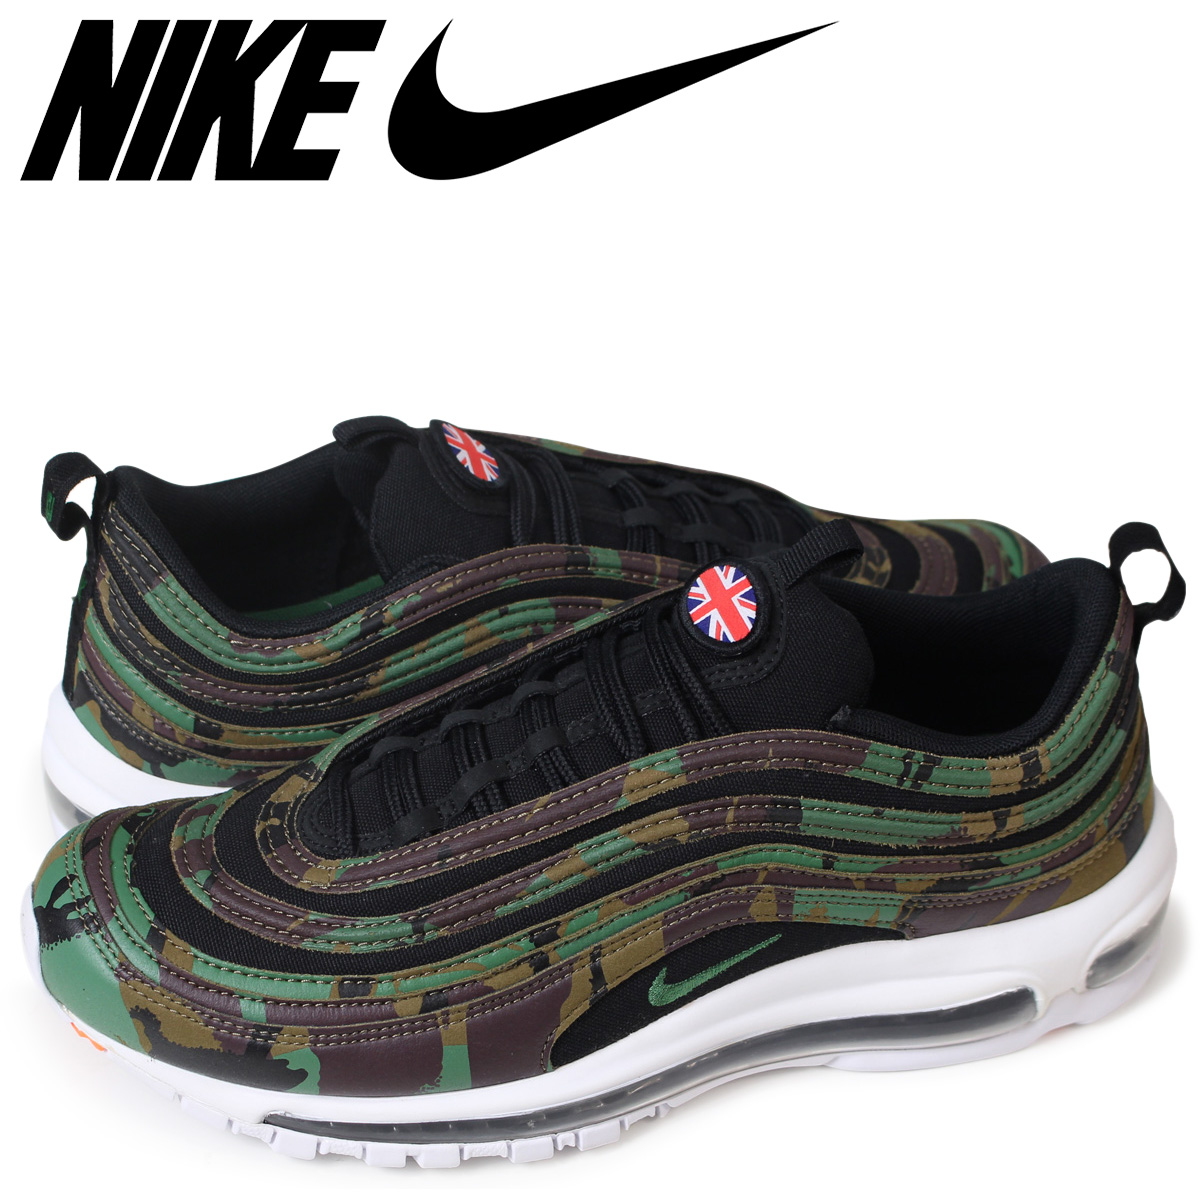 4513101411 NIKE AIR MAX 97 OG UK CAMO Kie Ney AMAX 97 sneakers men AJ2614-201 ...